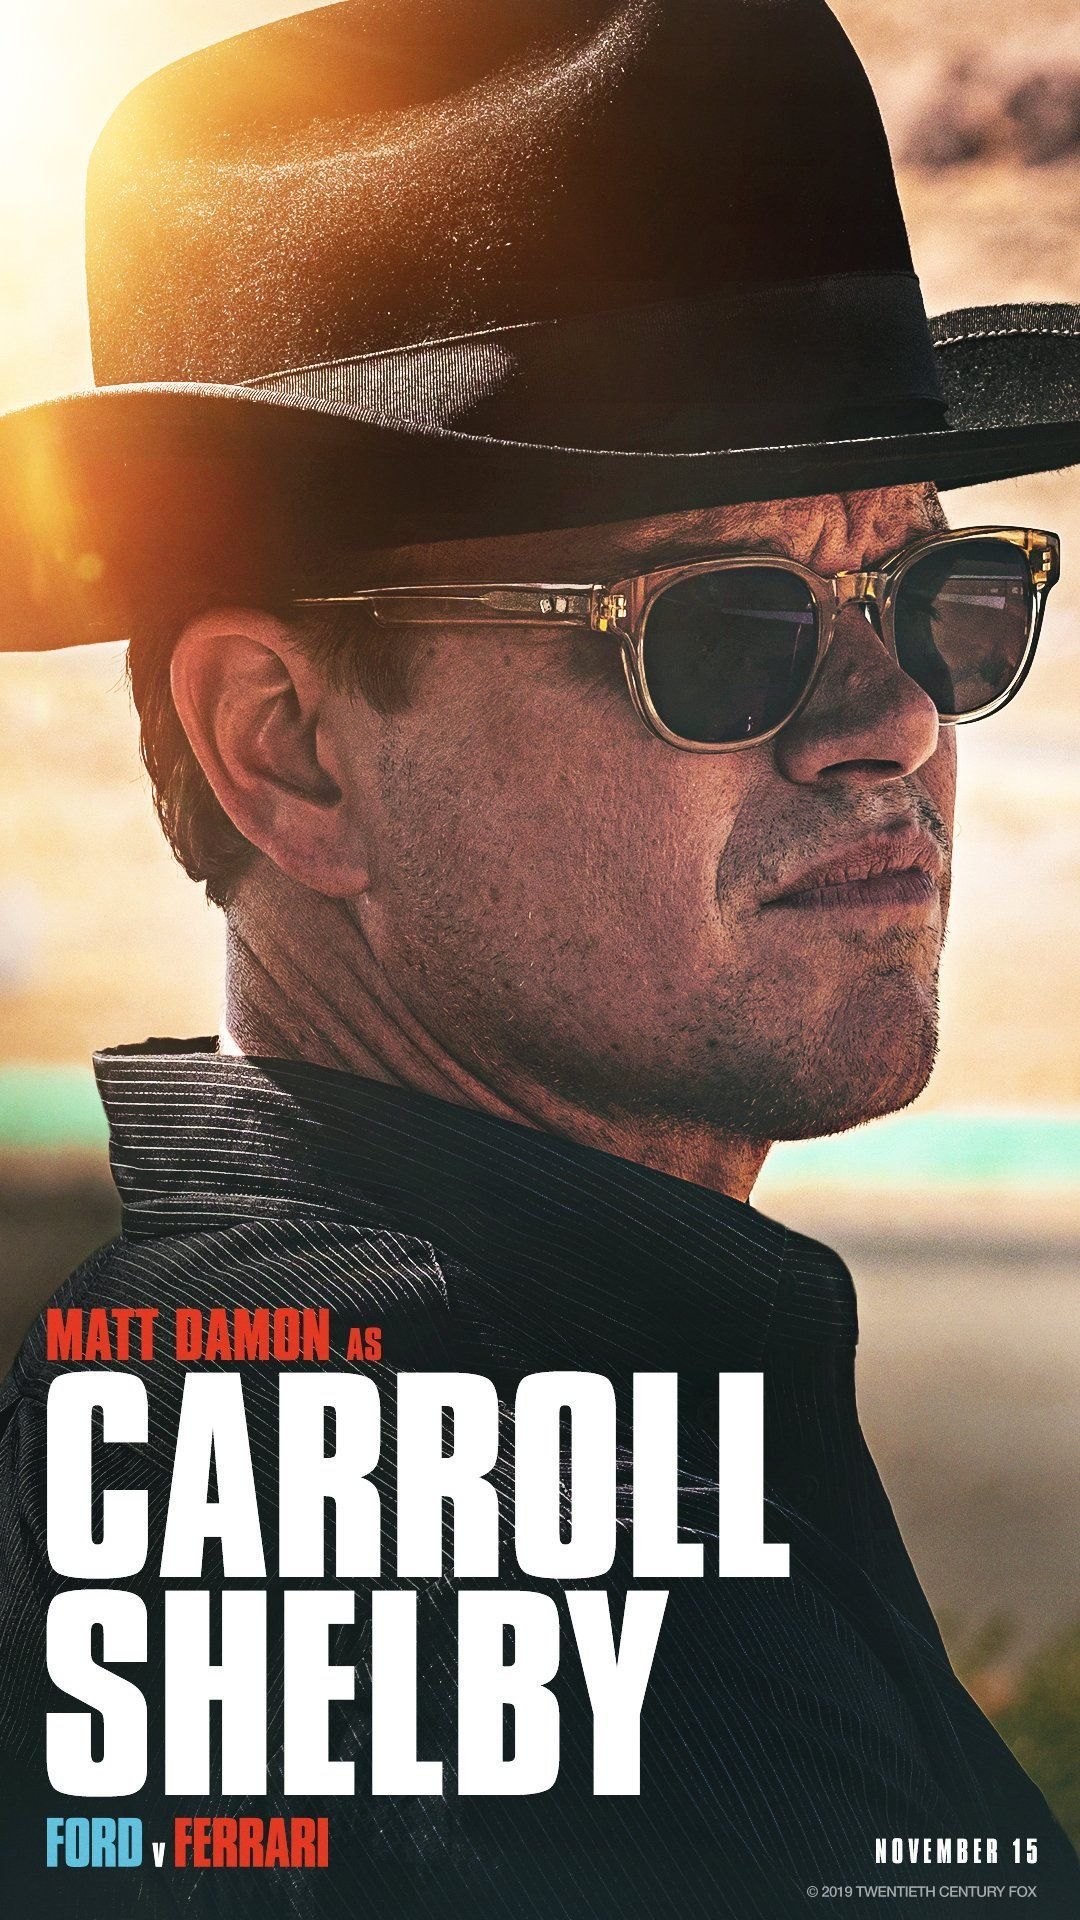 Matt Damon As Carroll Shelby Wearing Sunglasses In Ford V Ferrari